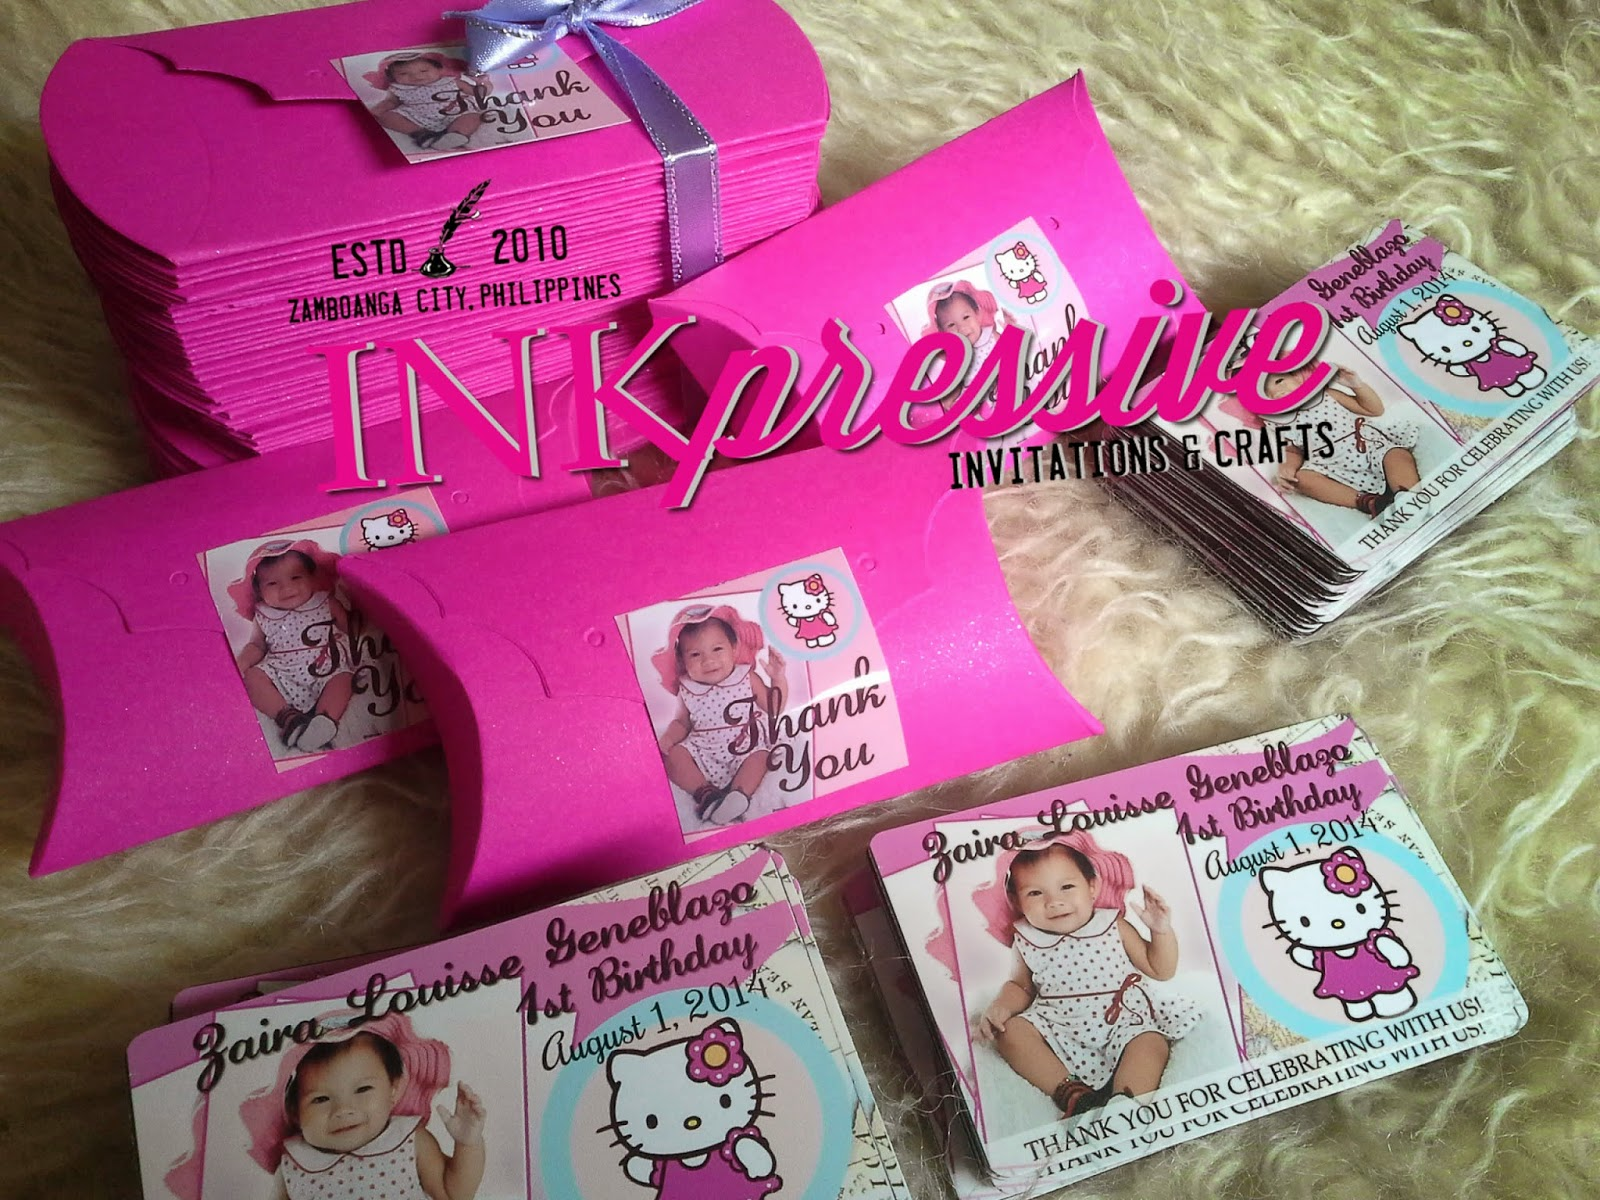 Party Souvenirs and Giveaways | INKPRESSIVE INVITATIONS